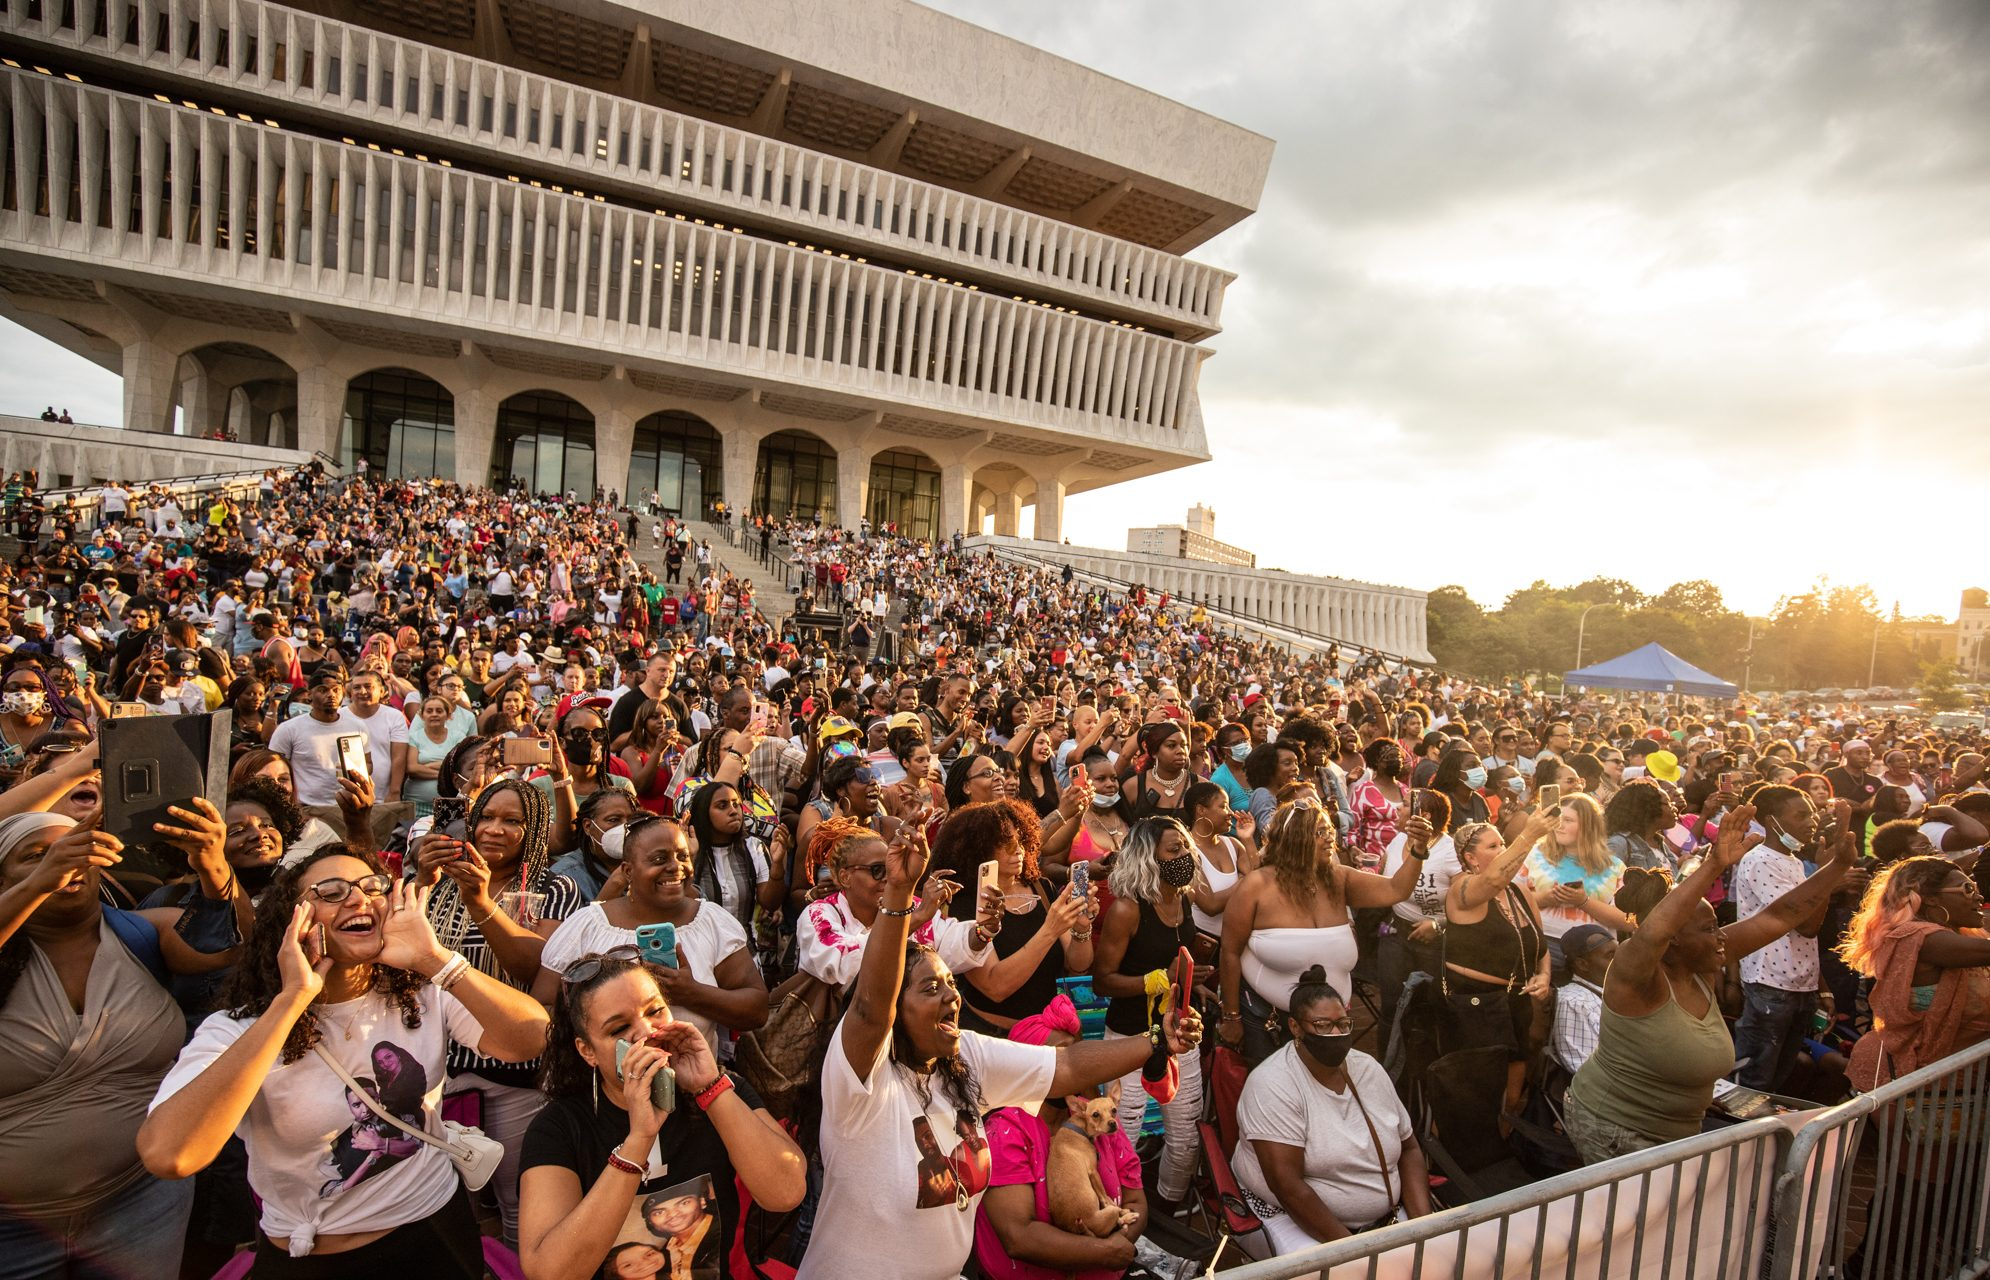 Ginuwine Kicks off Live Music Series at Empire State Plaza in Albany, NY Performing to Thousands